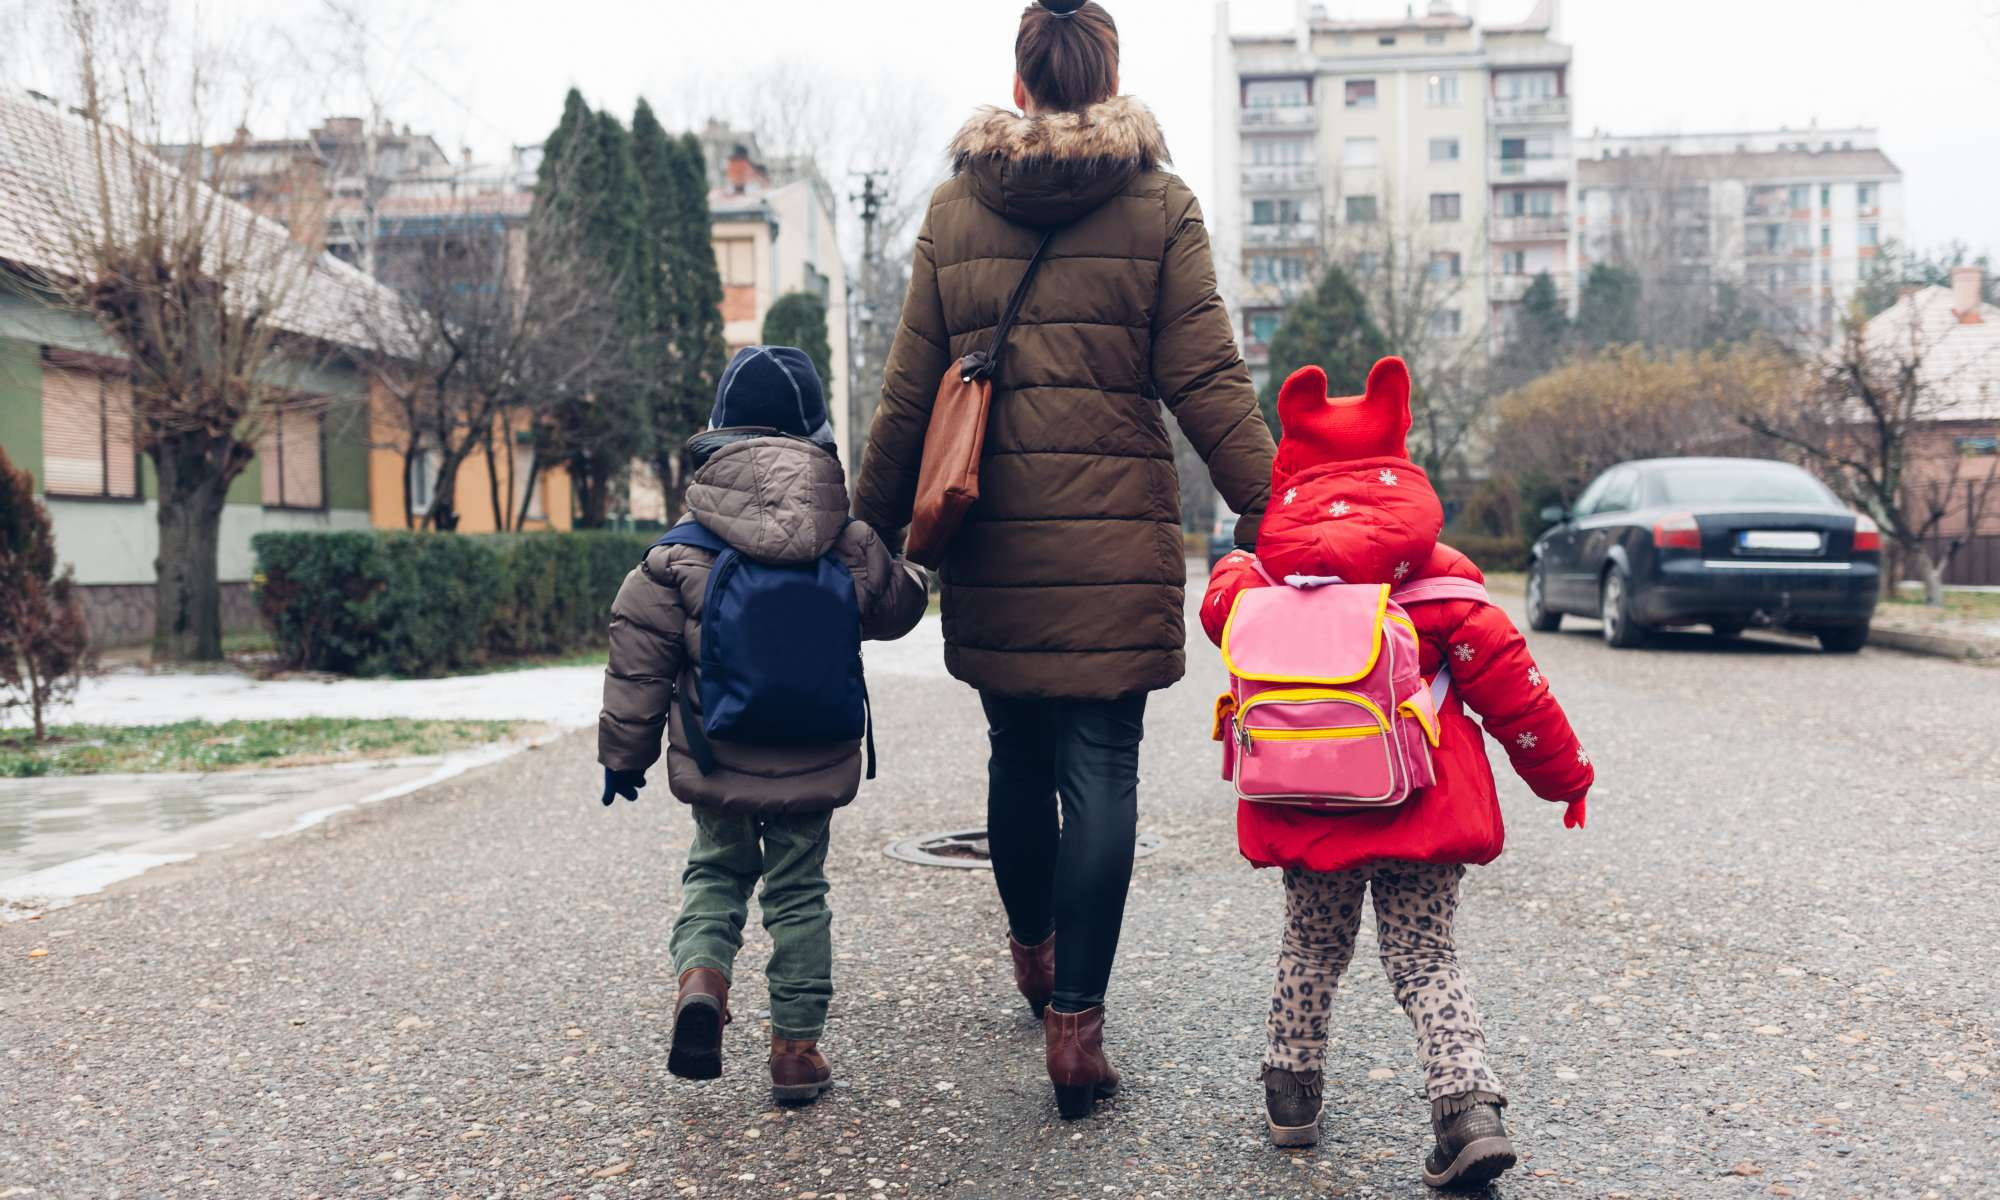 A Back-to-School Guide for Talking to your kids about consent — sara nasserzadeh — photo shows a parent holding two children's hands; they are wearing backpacks.